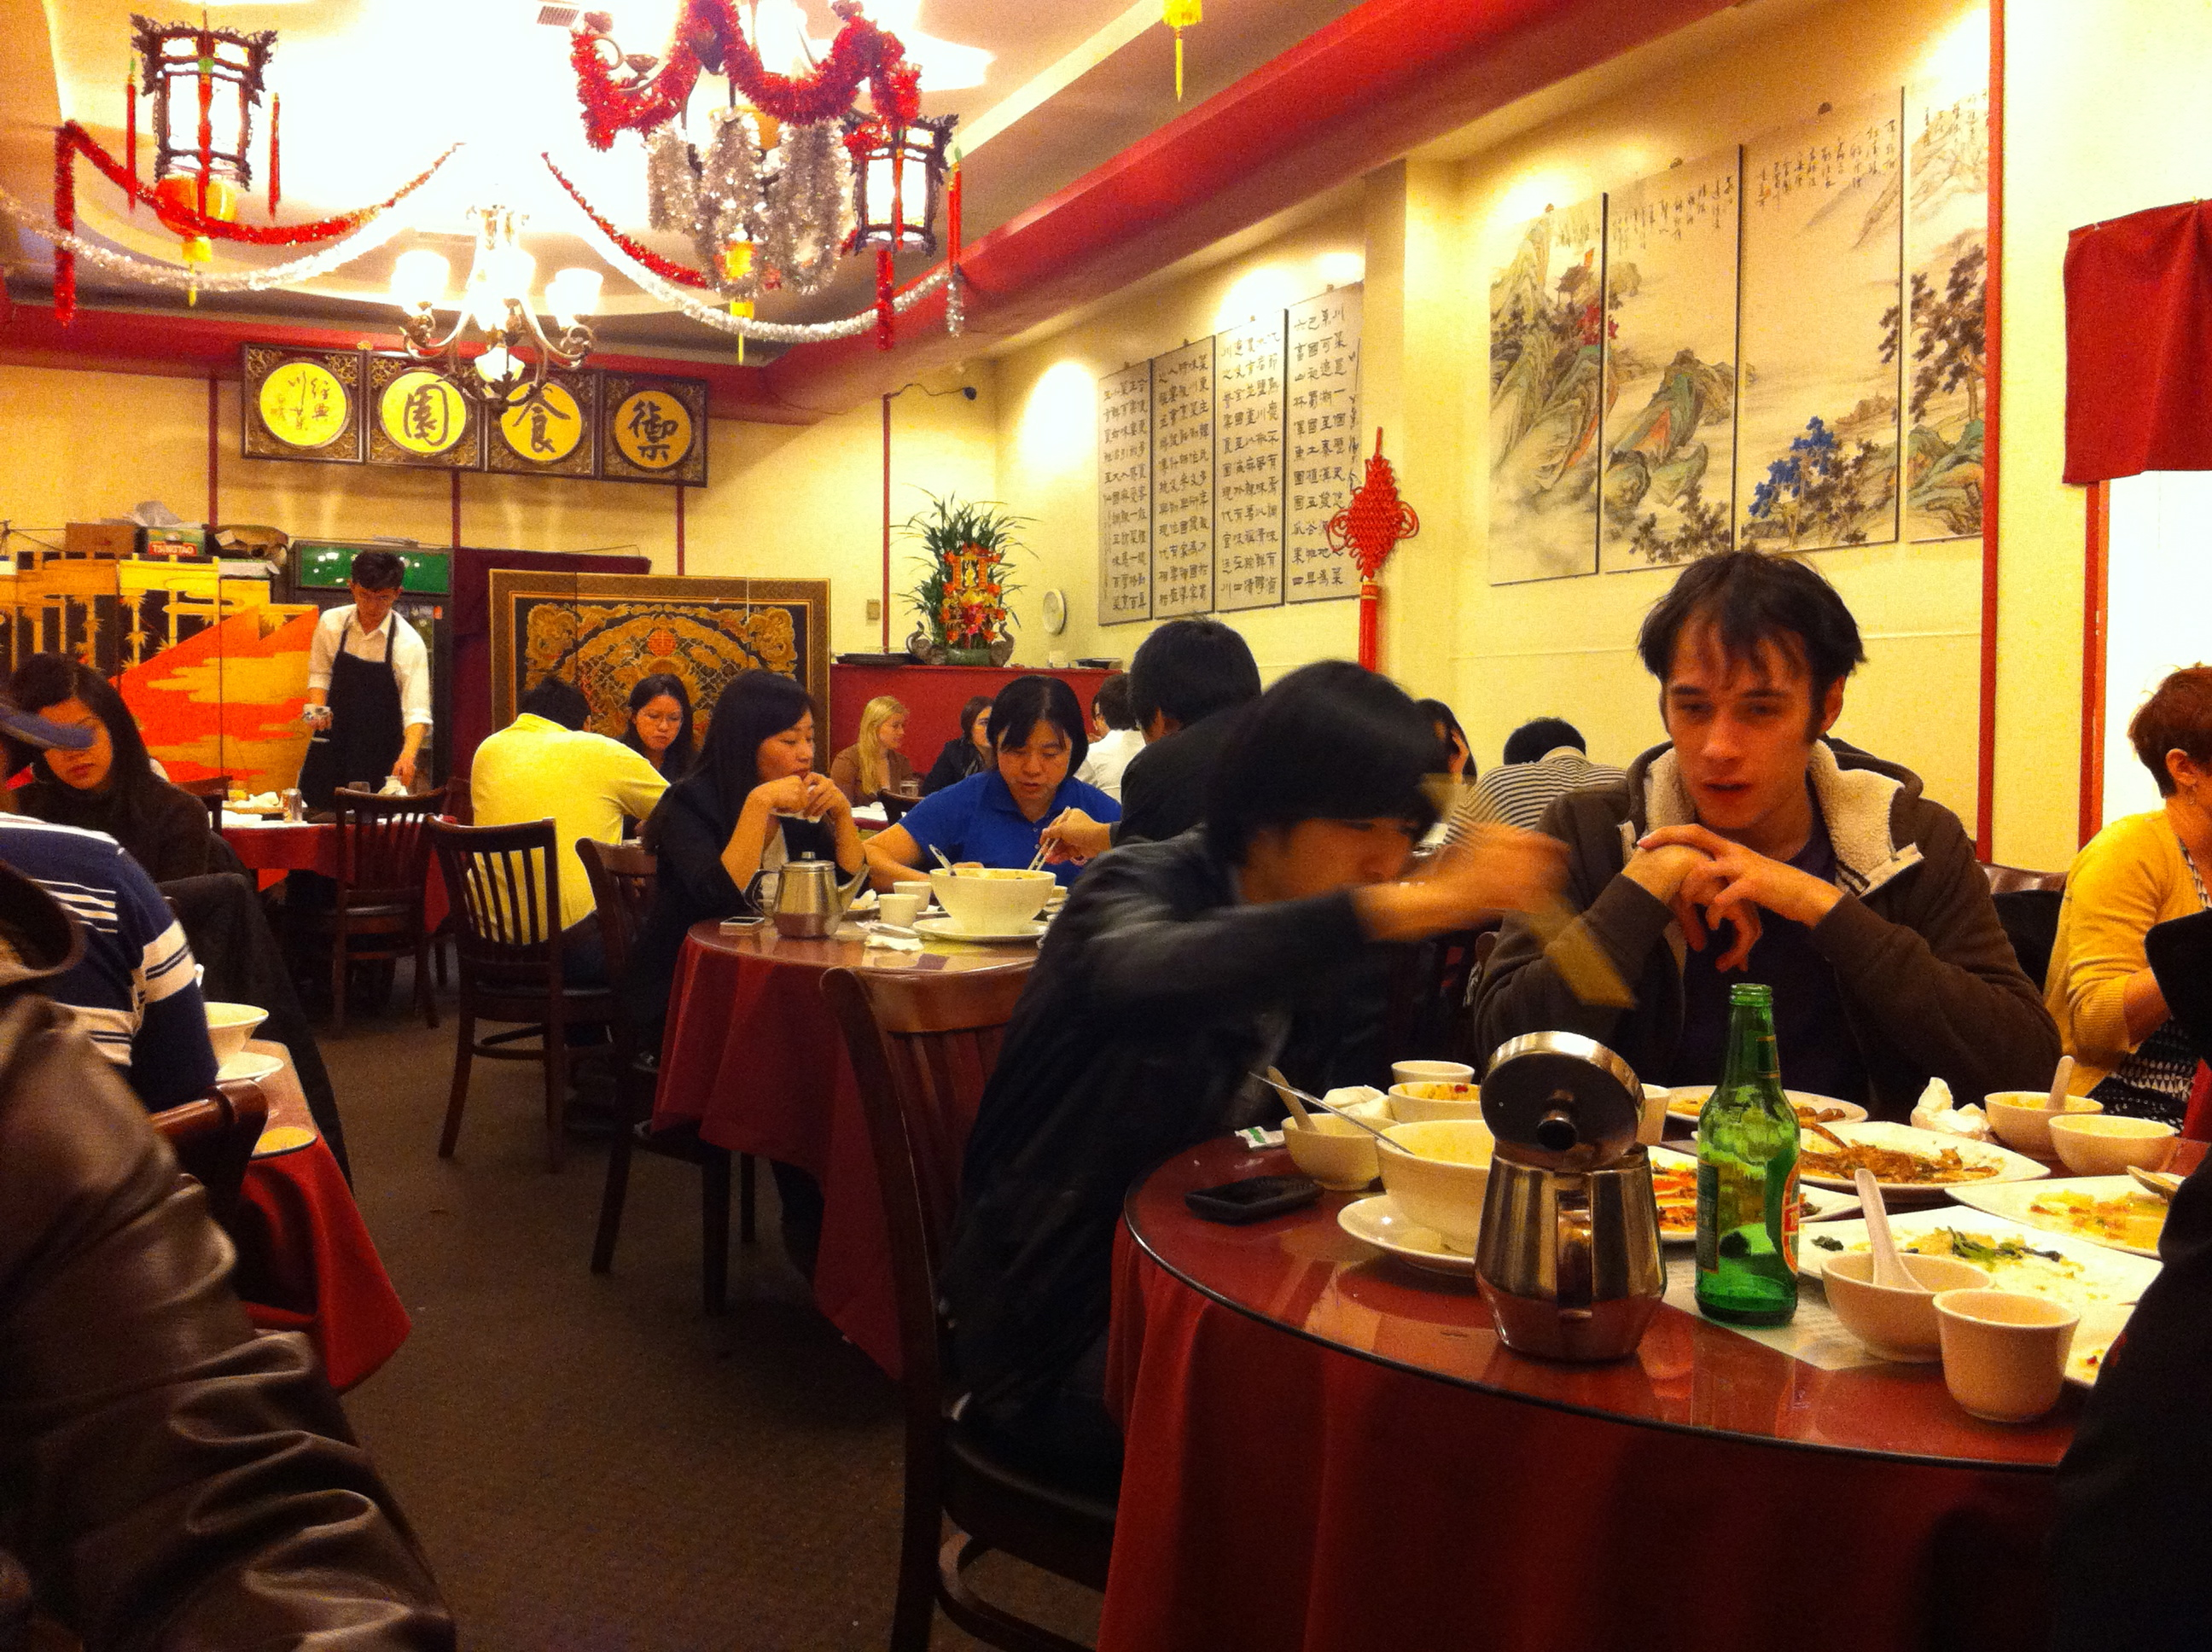 Z&Y Restaurant, Chinatown, San Francisco